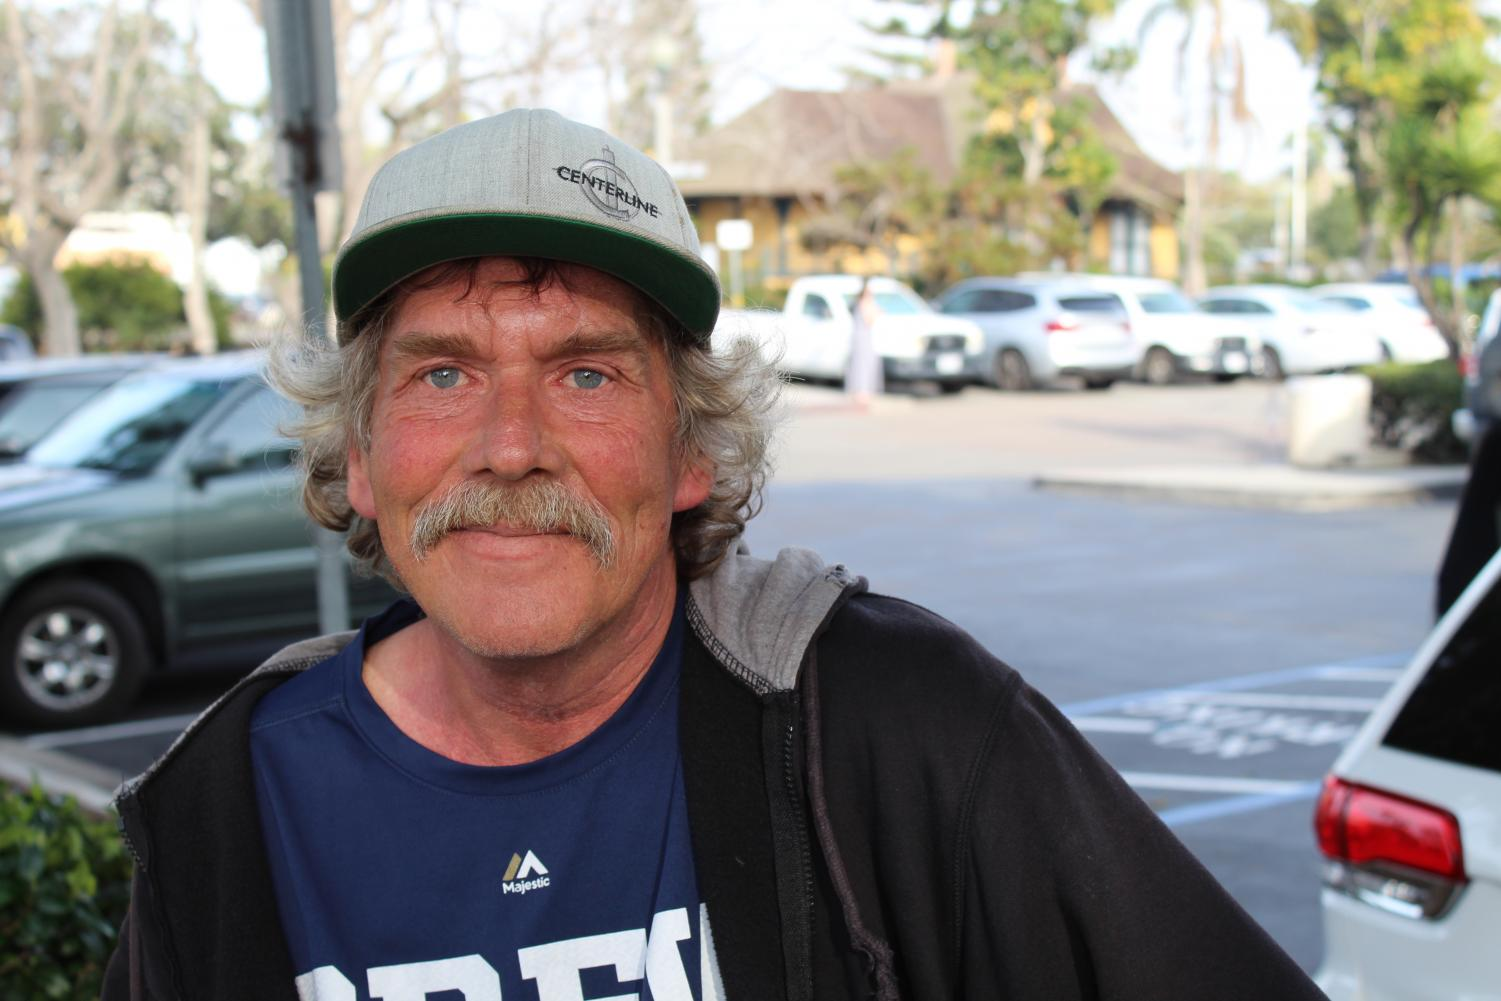 Kenny has been homeless for 16 years, working with Interfaith Community Services to combat alcoholism and homelessness.